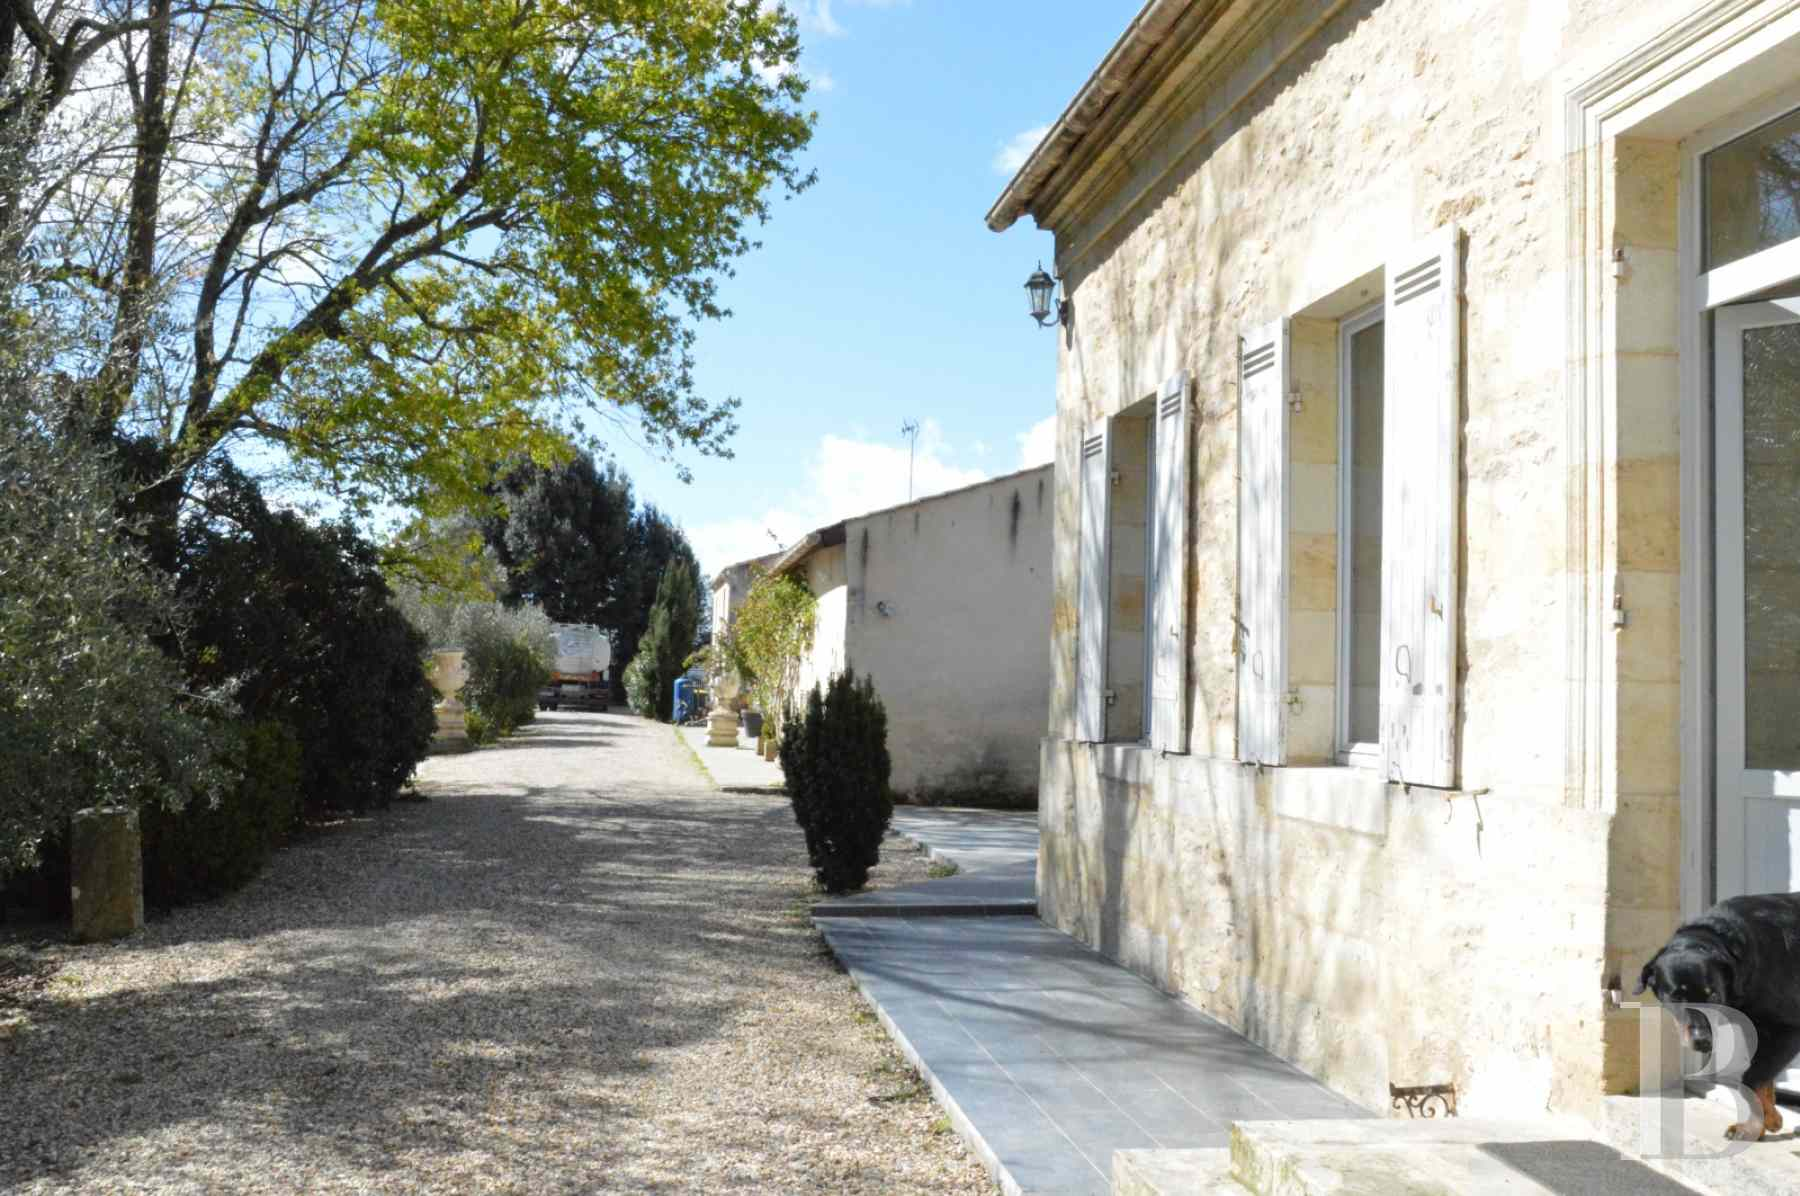 property for sale France aquitaine blaye coast - 4 zoom